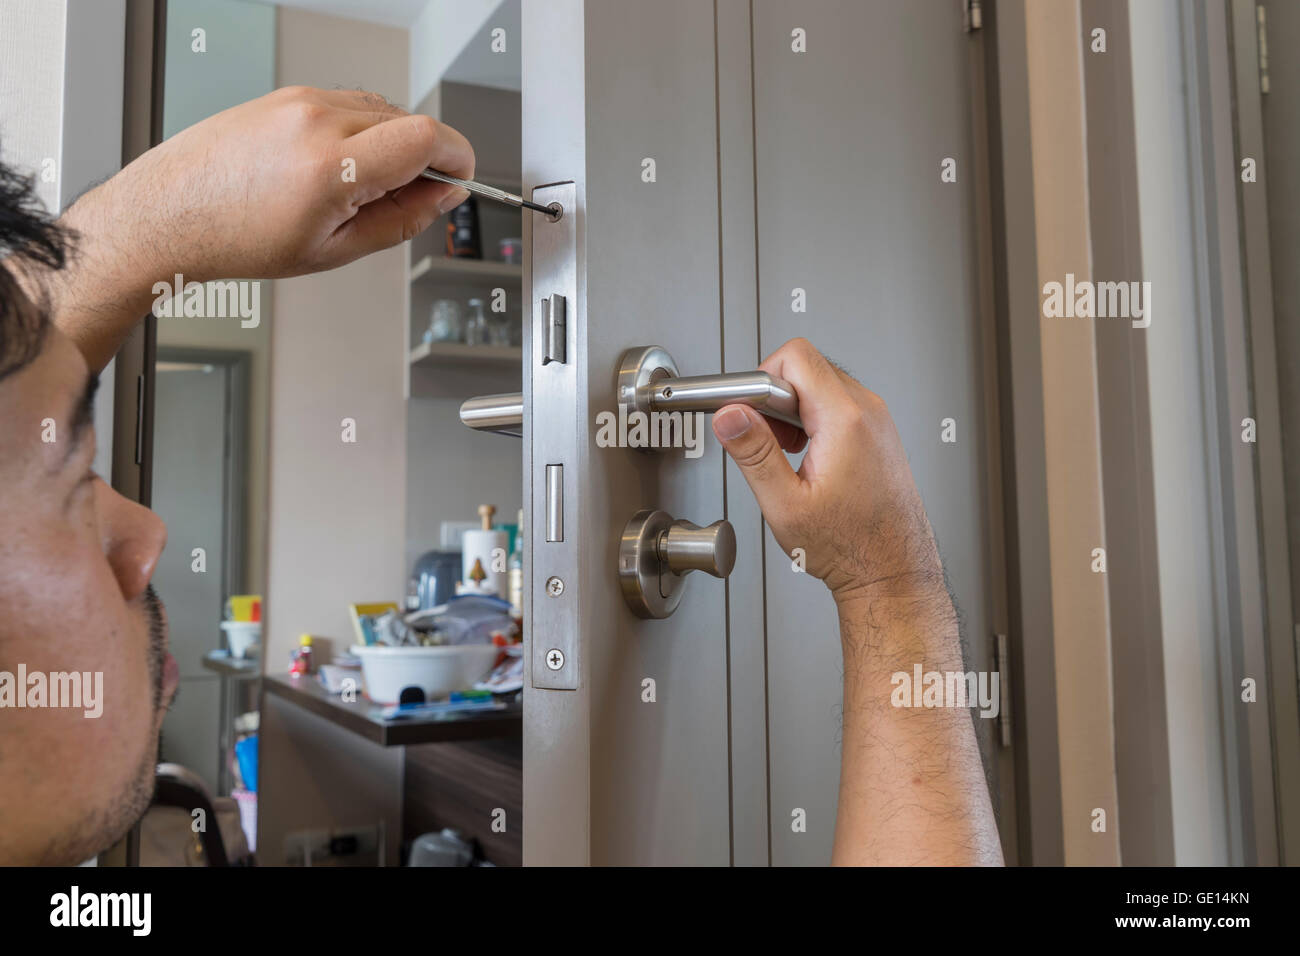 locksmith try to fix modern knob door by screwdriver - can use to display or montage on products - Stock Image